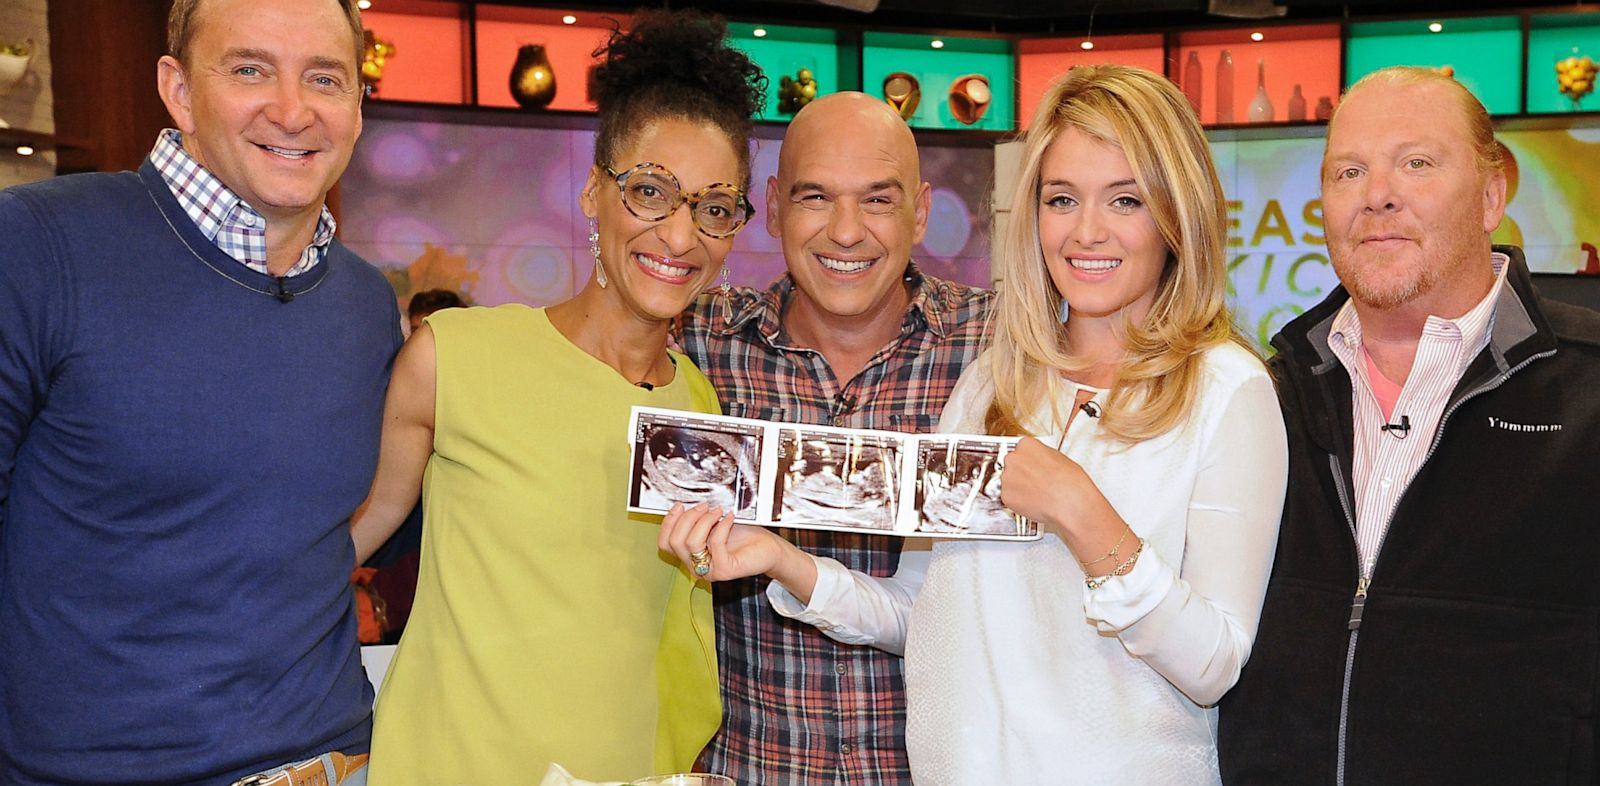 PHOTO: Daphne Oz and cast of The Chew